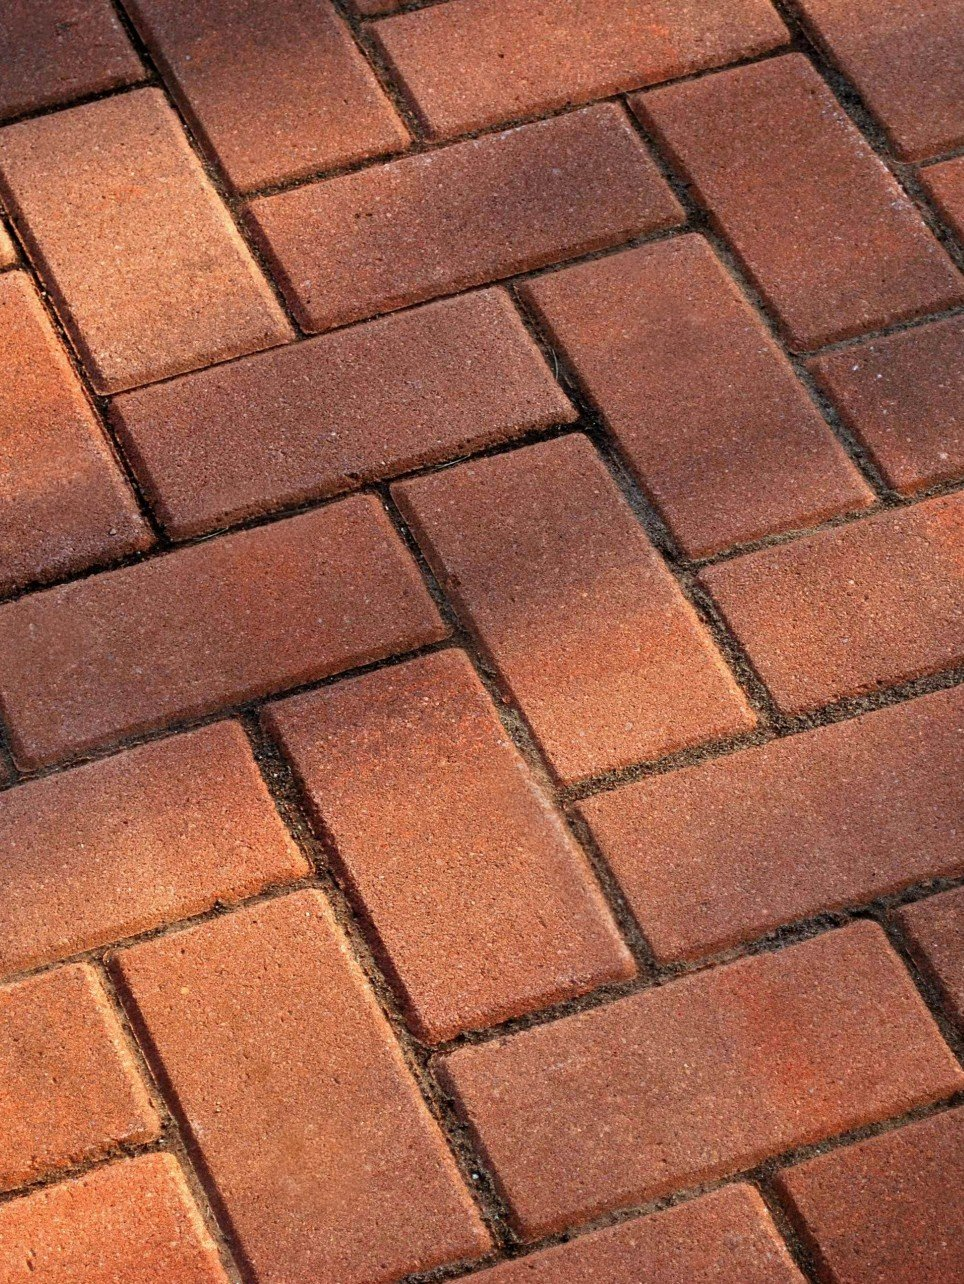 Block Paving Companies Wells Green